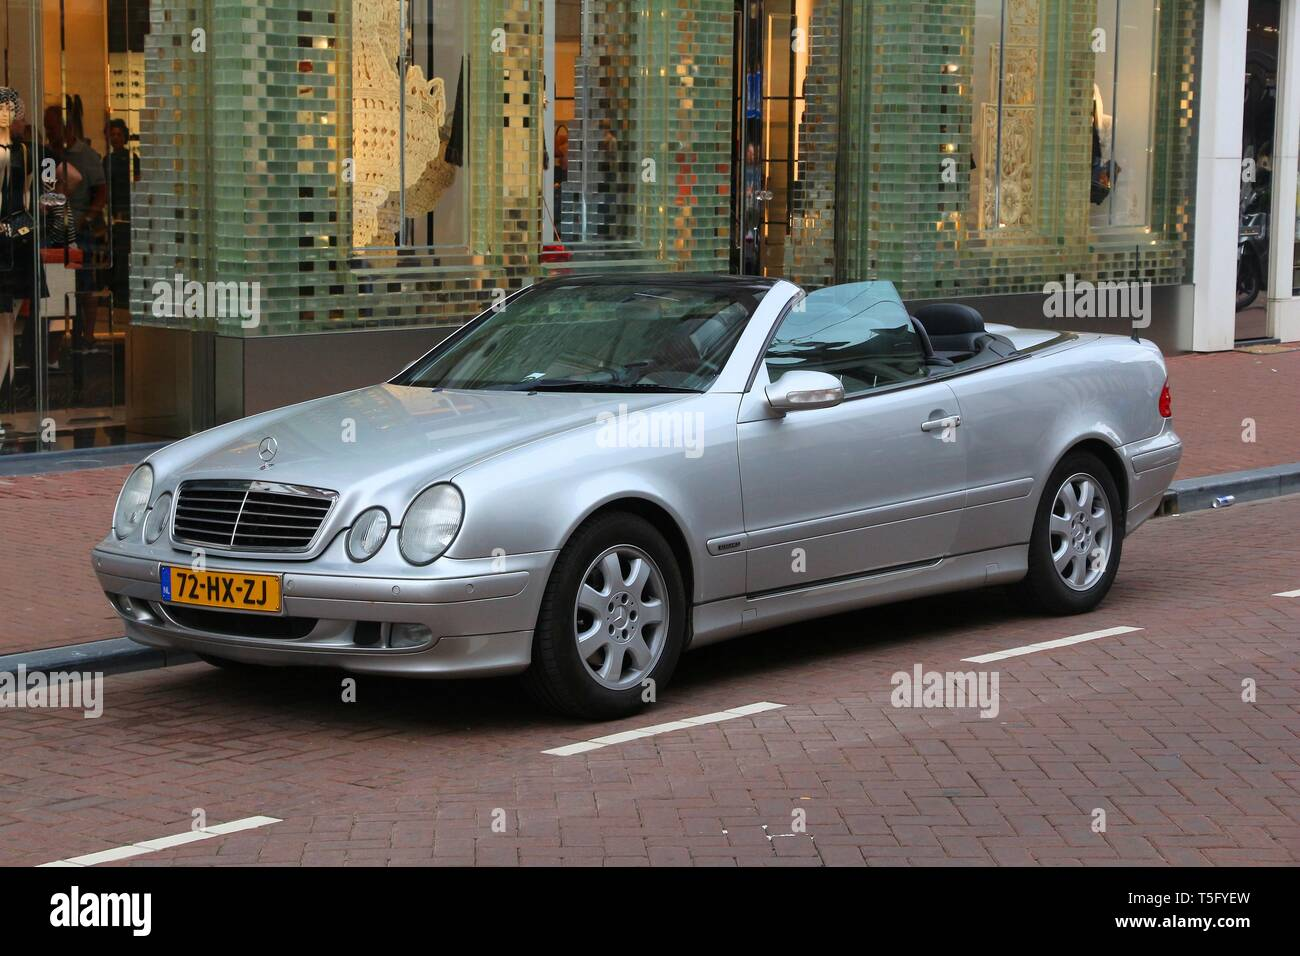 AMSTERDAM, NETHERLANDS - JULY 10, 2017: Silver Mercedes-Benz E-class convertible car parked in Amsterdam. Netherlands has 528 registered cars per 1,00 - Stock Image